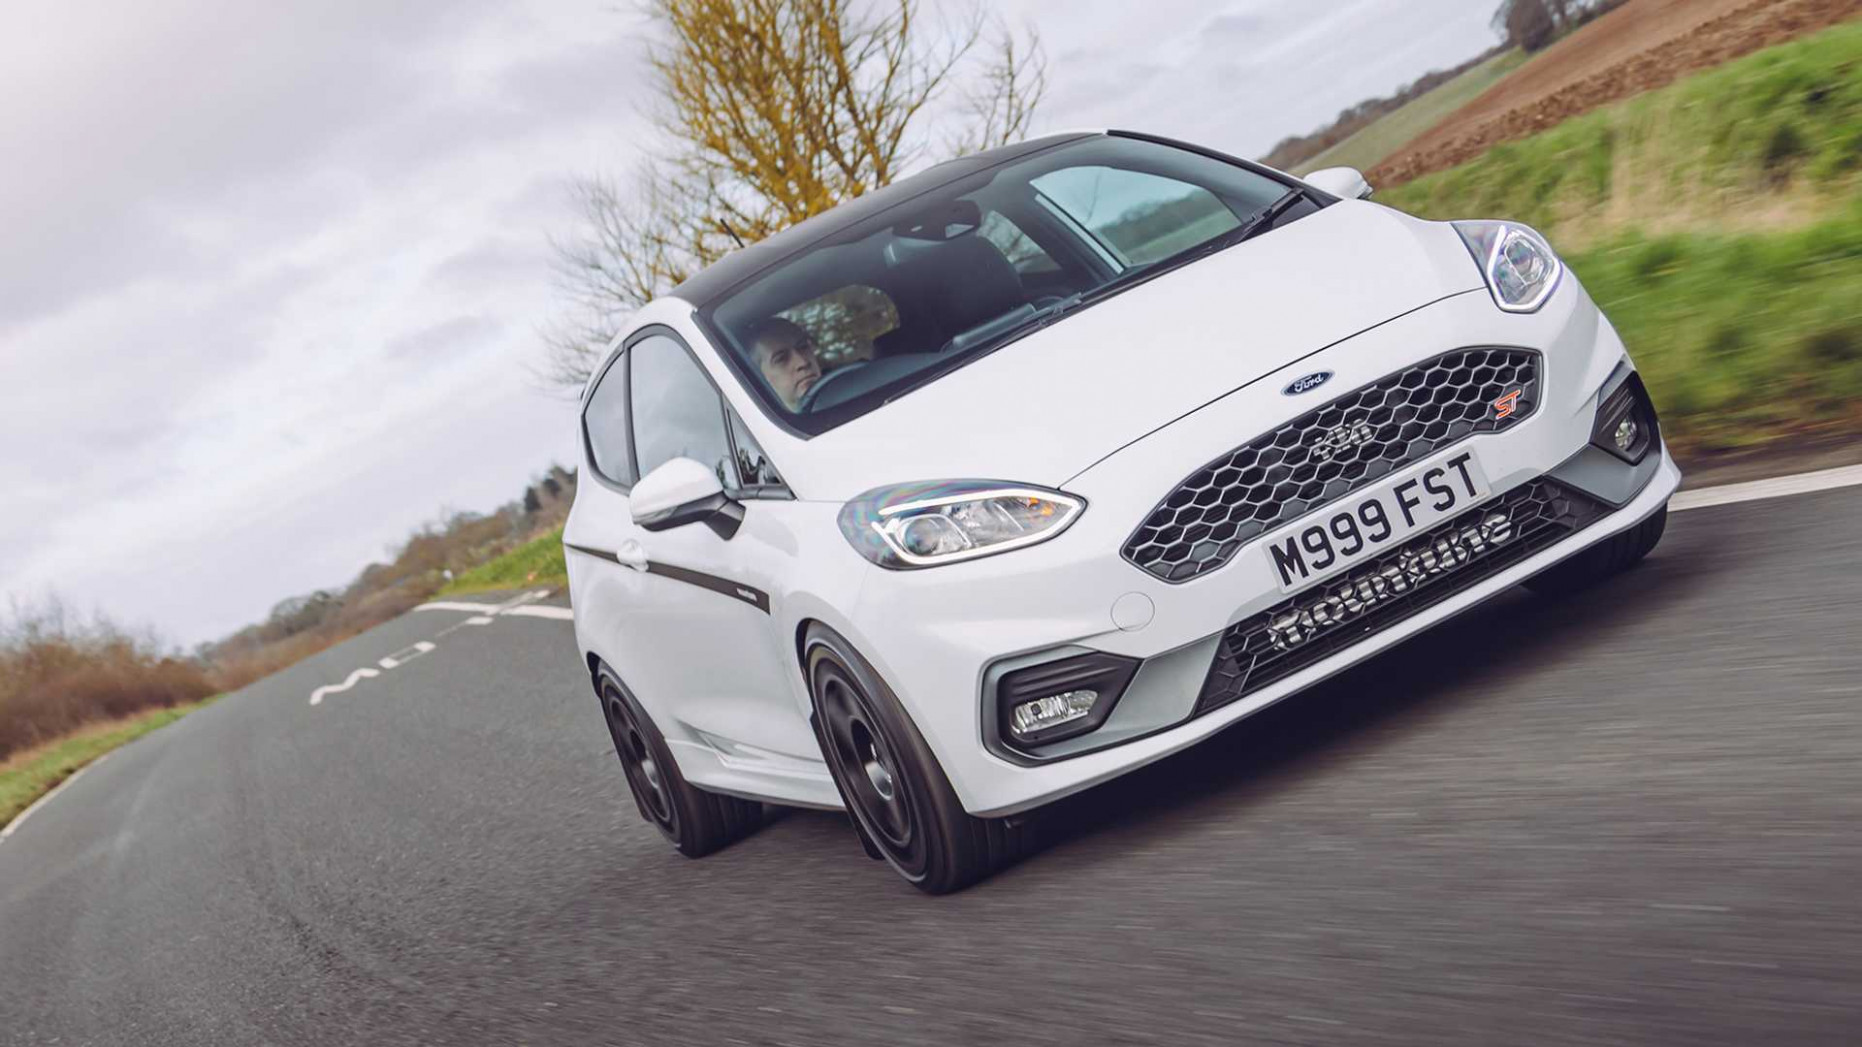 Redesign and Review 2022 Fiesta St